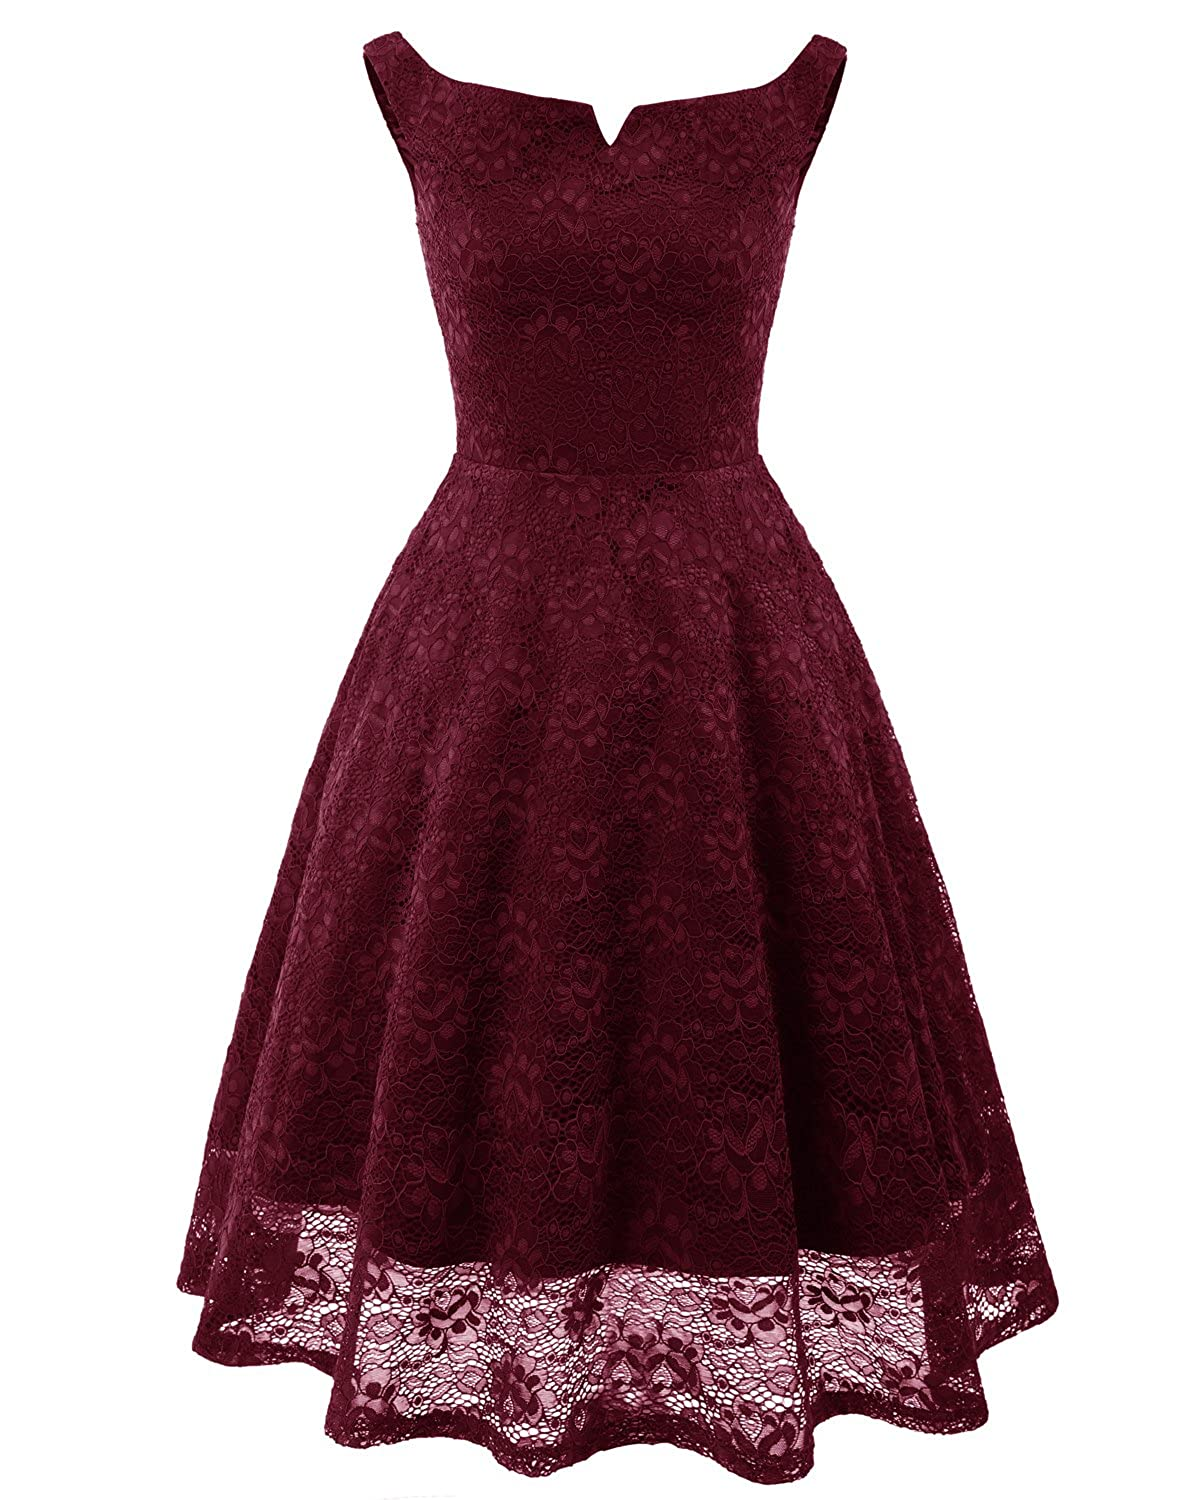 6dfe7ee5aadc Bright Deer Women Bardot Lace Vintage Midi Skater Dress Party ...